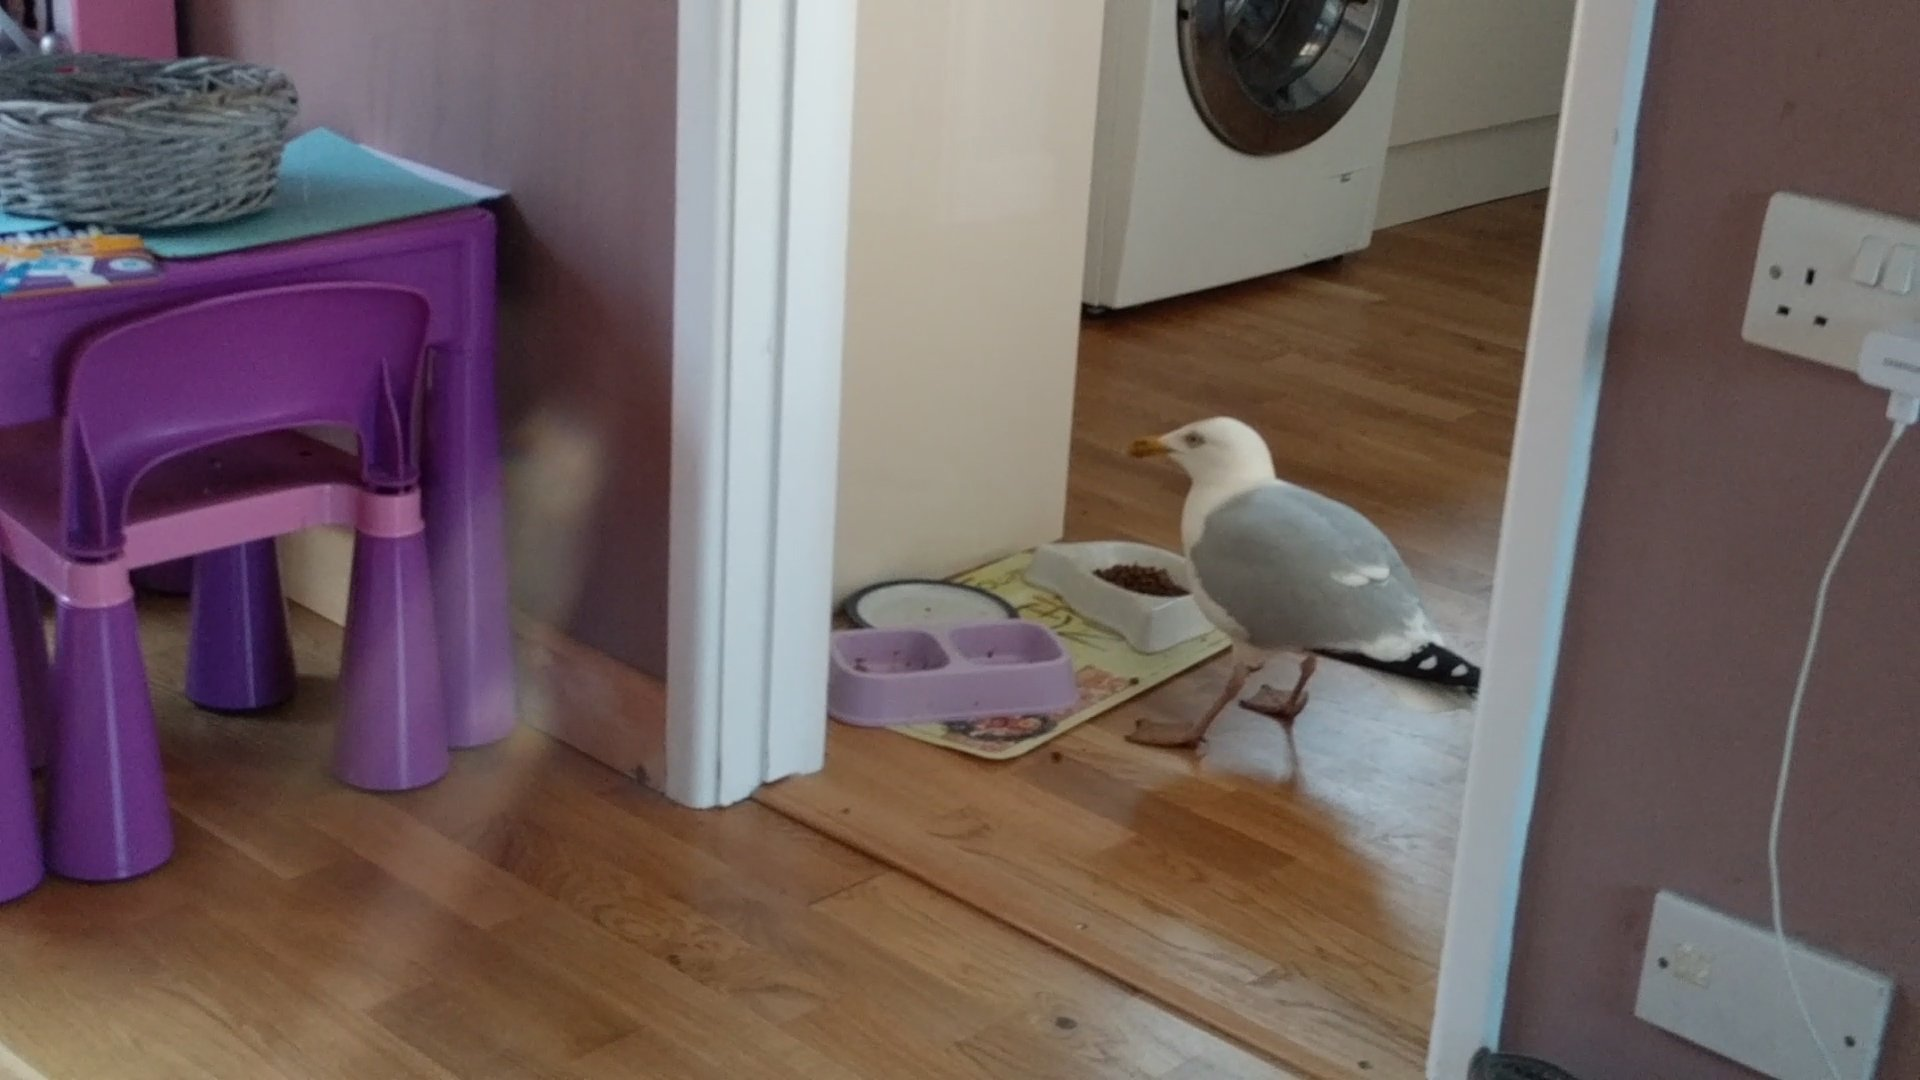 This cheeky seagull has been wandering through a family home six times a day - to steal CAT biscuits. See SWNS story SWGULL; The bird - nicknamed Beakie - was a constant feature at the home of Andrew and Jacqui Merrington last summer but has returned in recent weeks more confident than ever. It regularly 'knocks' on the patio door with it beak demanding to be let in. And after the doors were left open in the recent spell of hot weather, the cocky gull has gone one step further by coming into the house to help itself to cat biscuits.